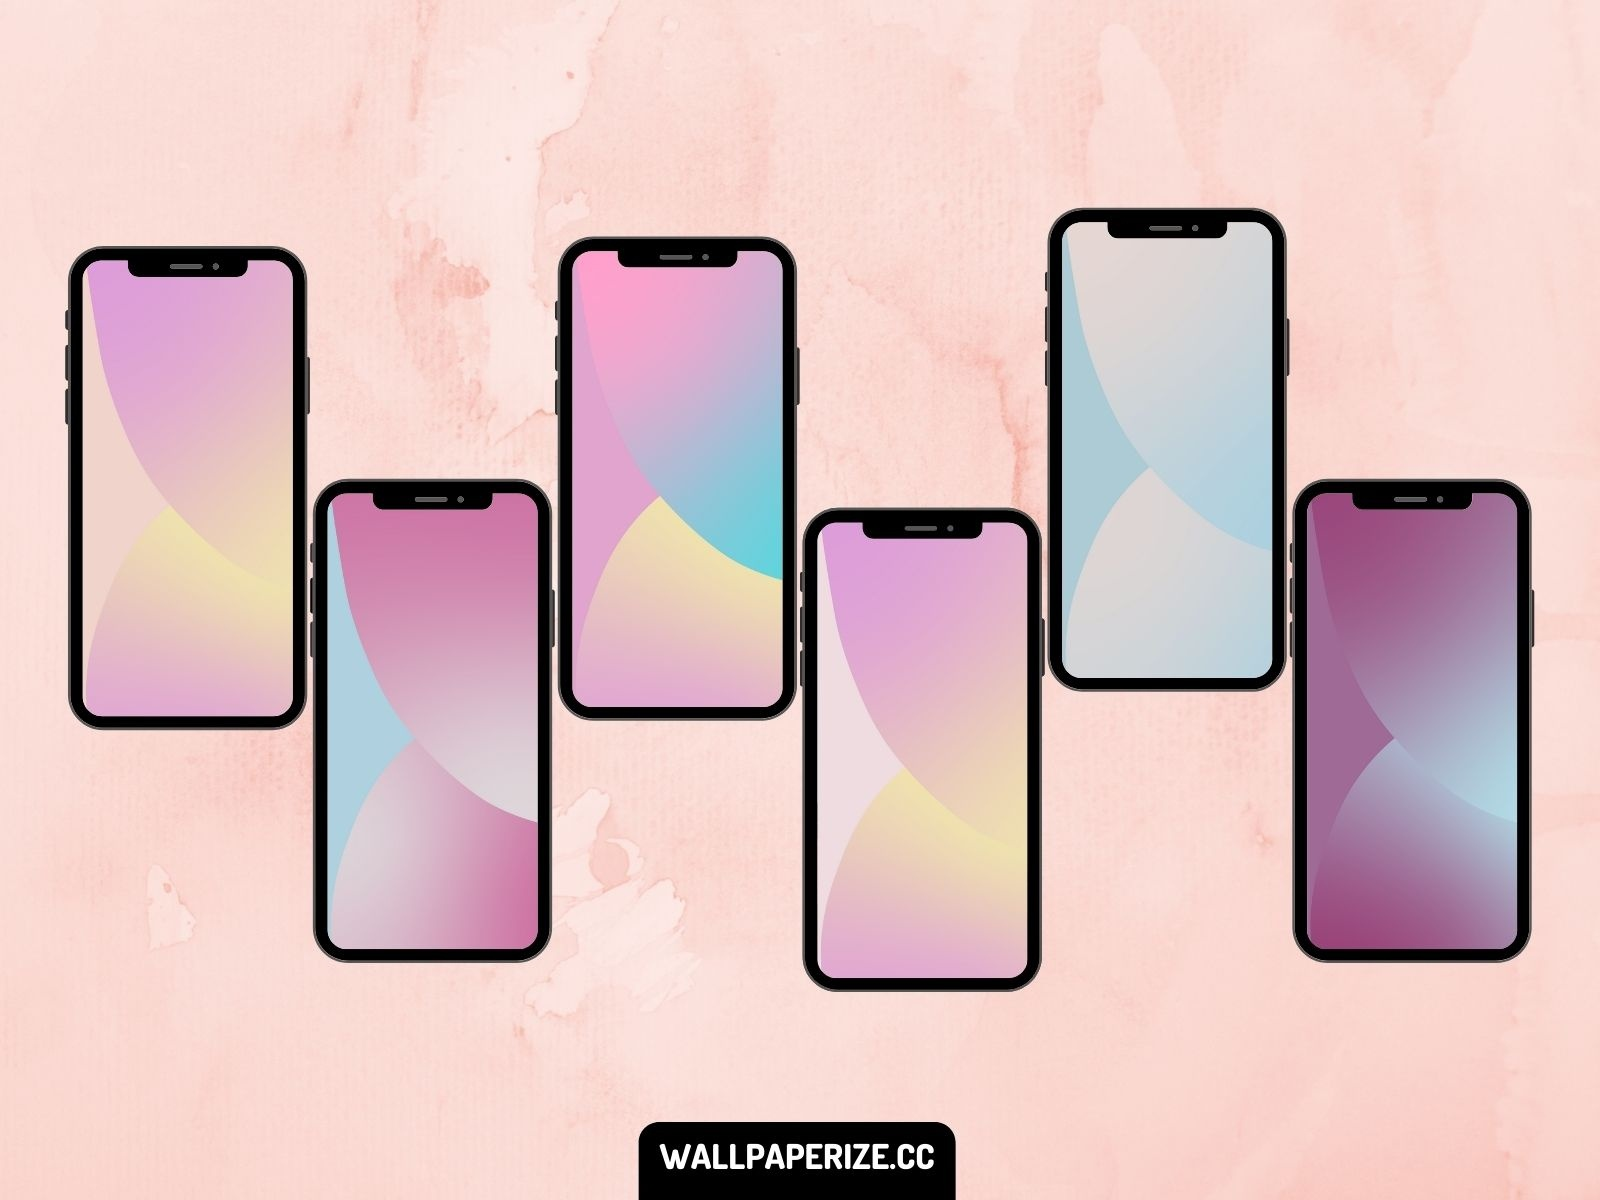 Ios 14 Wallpapers Modified To Pastel By Jorge Hardt On Dribbble